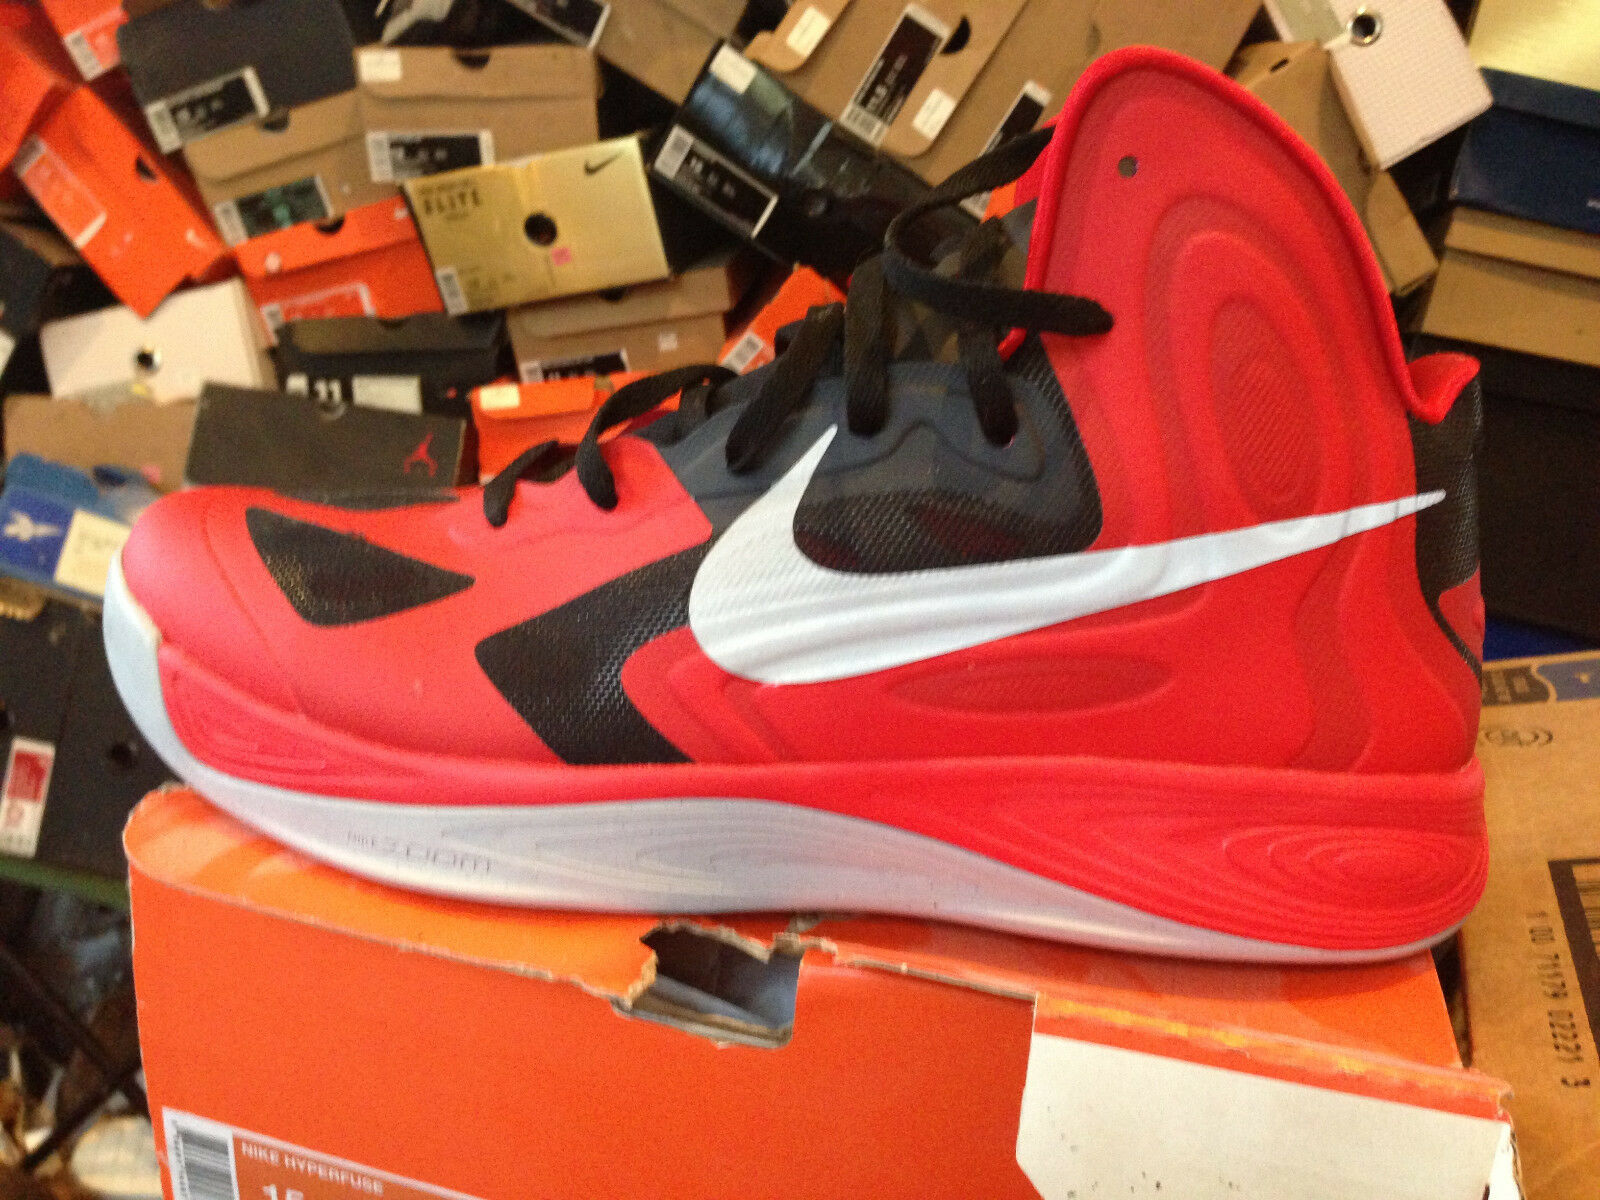 NIKE HYPERFUSE BNIB RED/SIL/BLK SIZE 15